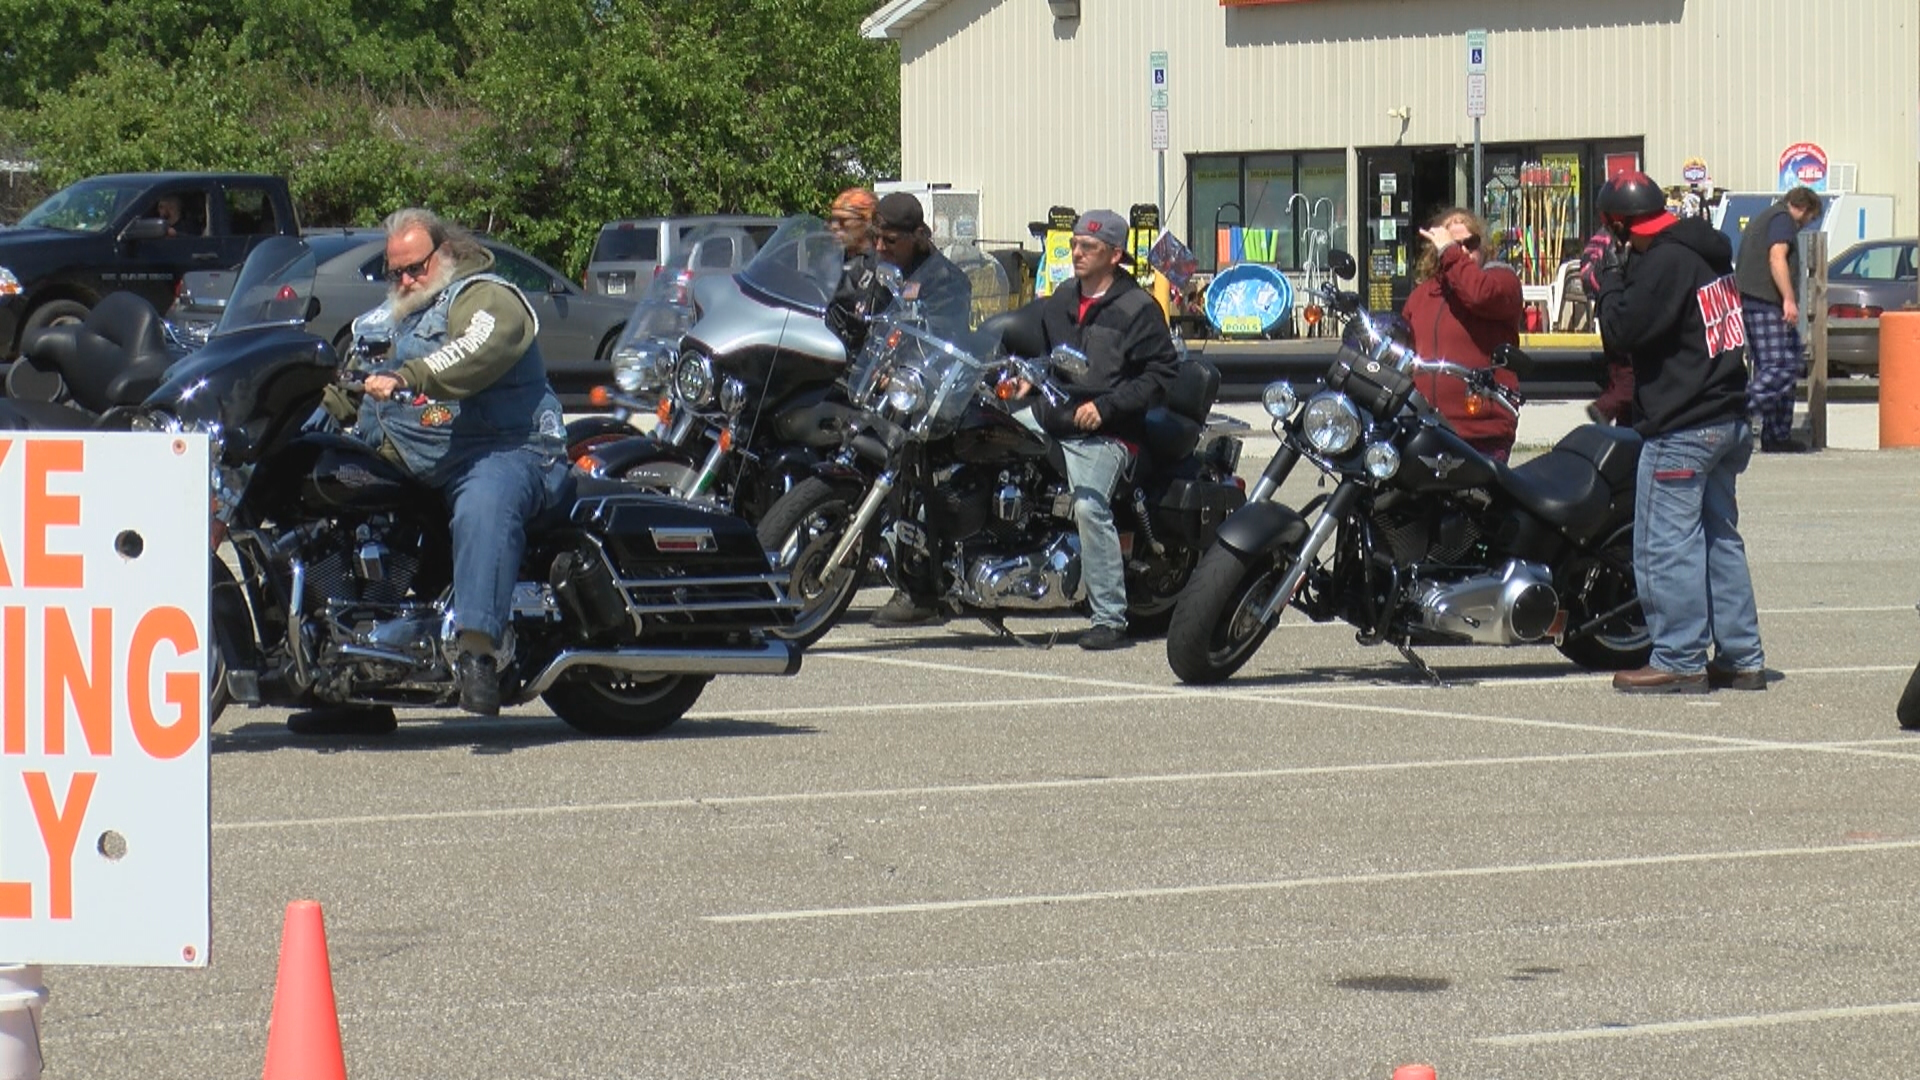 FALLEN SOLDIERS RIDE OUT_frame_121_1495931377221.jpg